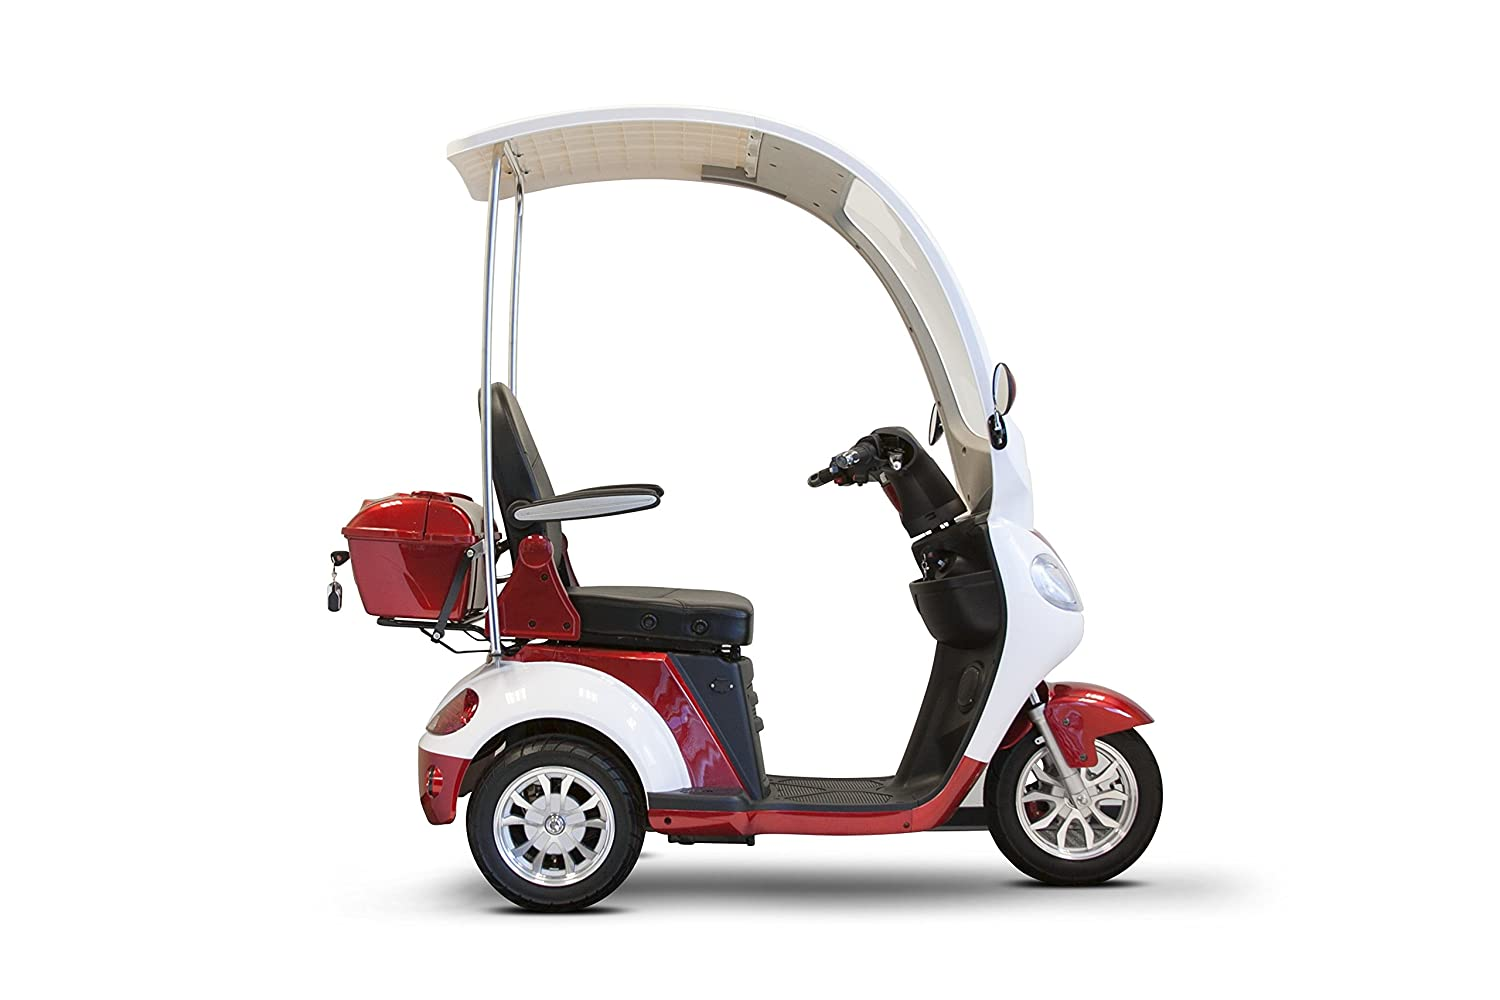 Amazon.com: E-Wheels - EW-44 Scooter - 3-Wheel - Red: Health ...